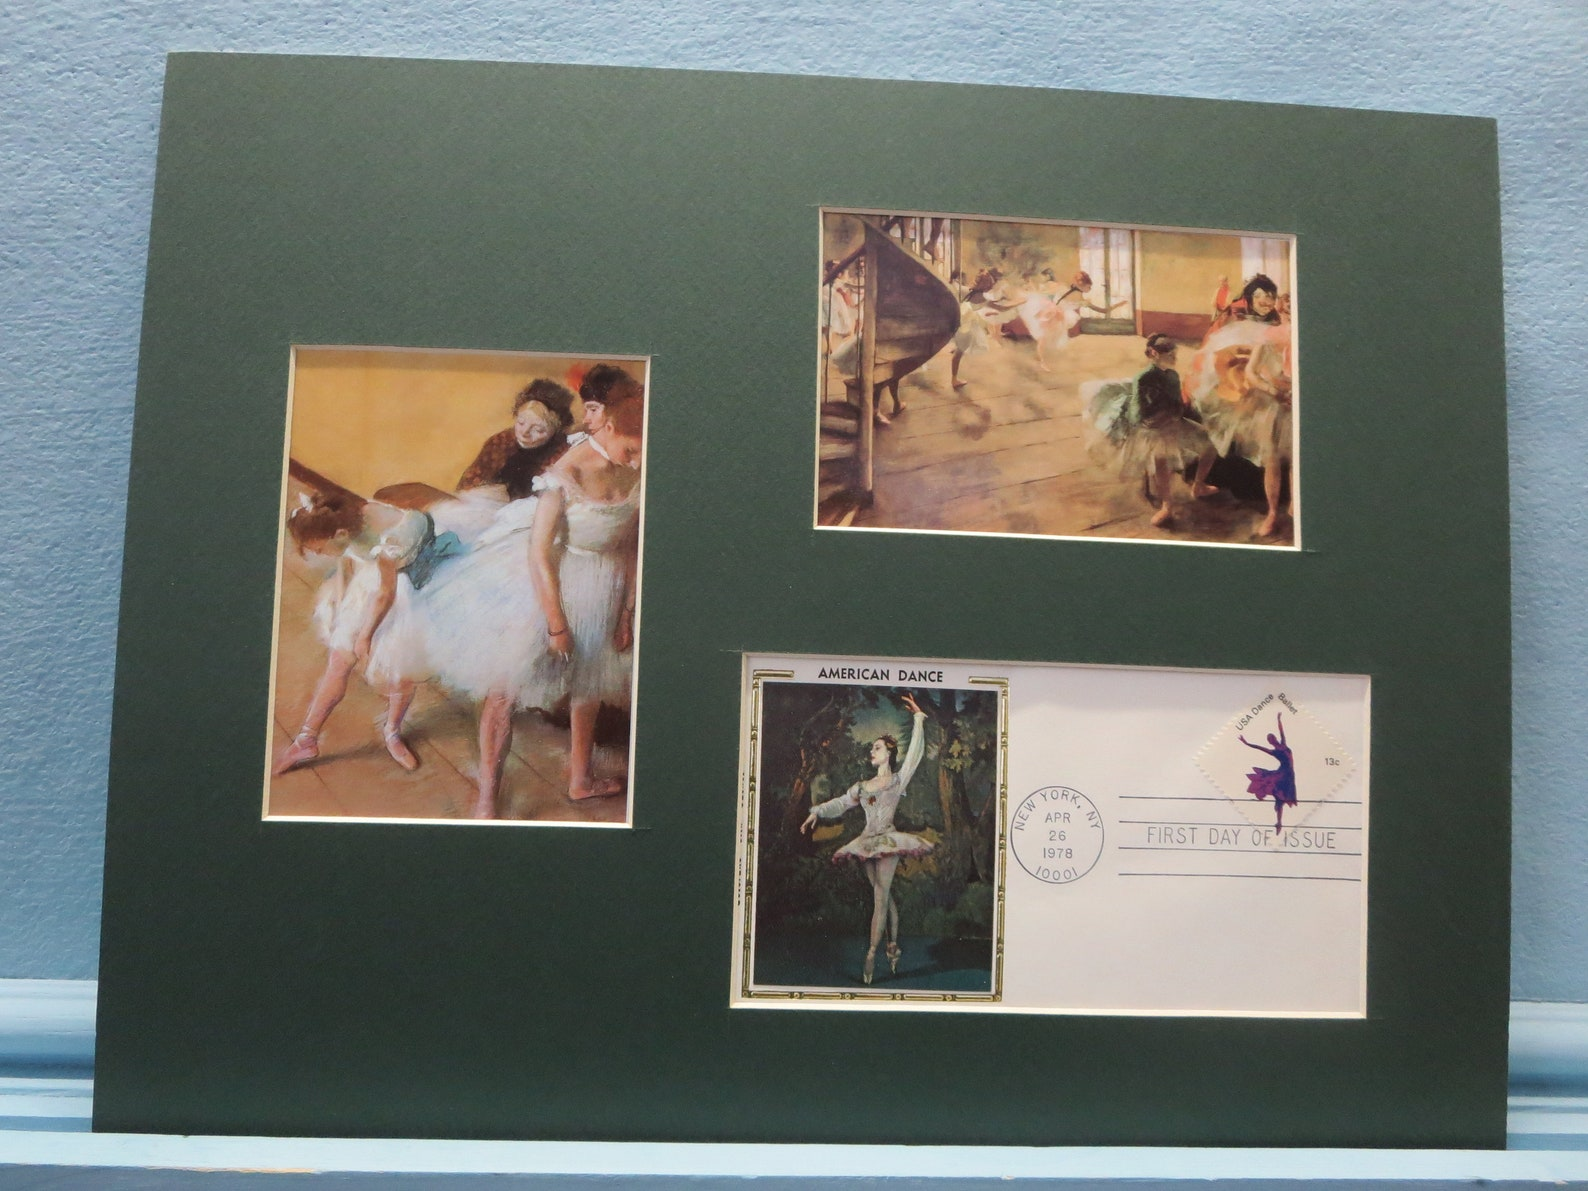 ballet dancers as painted by edgar degas and the first day cover of the ballet stamp